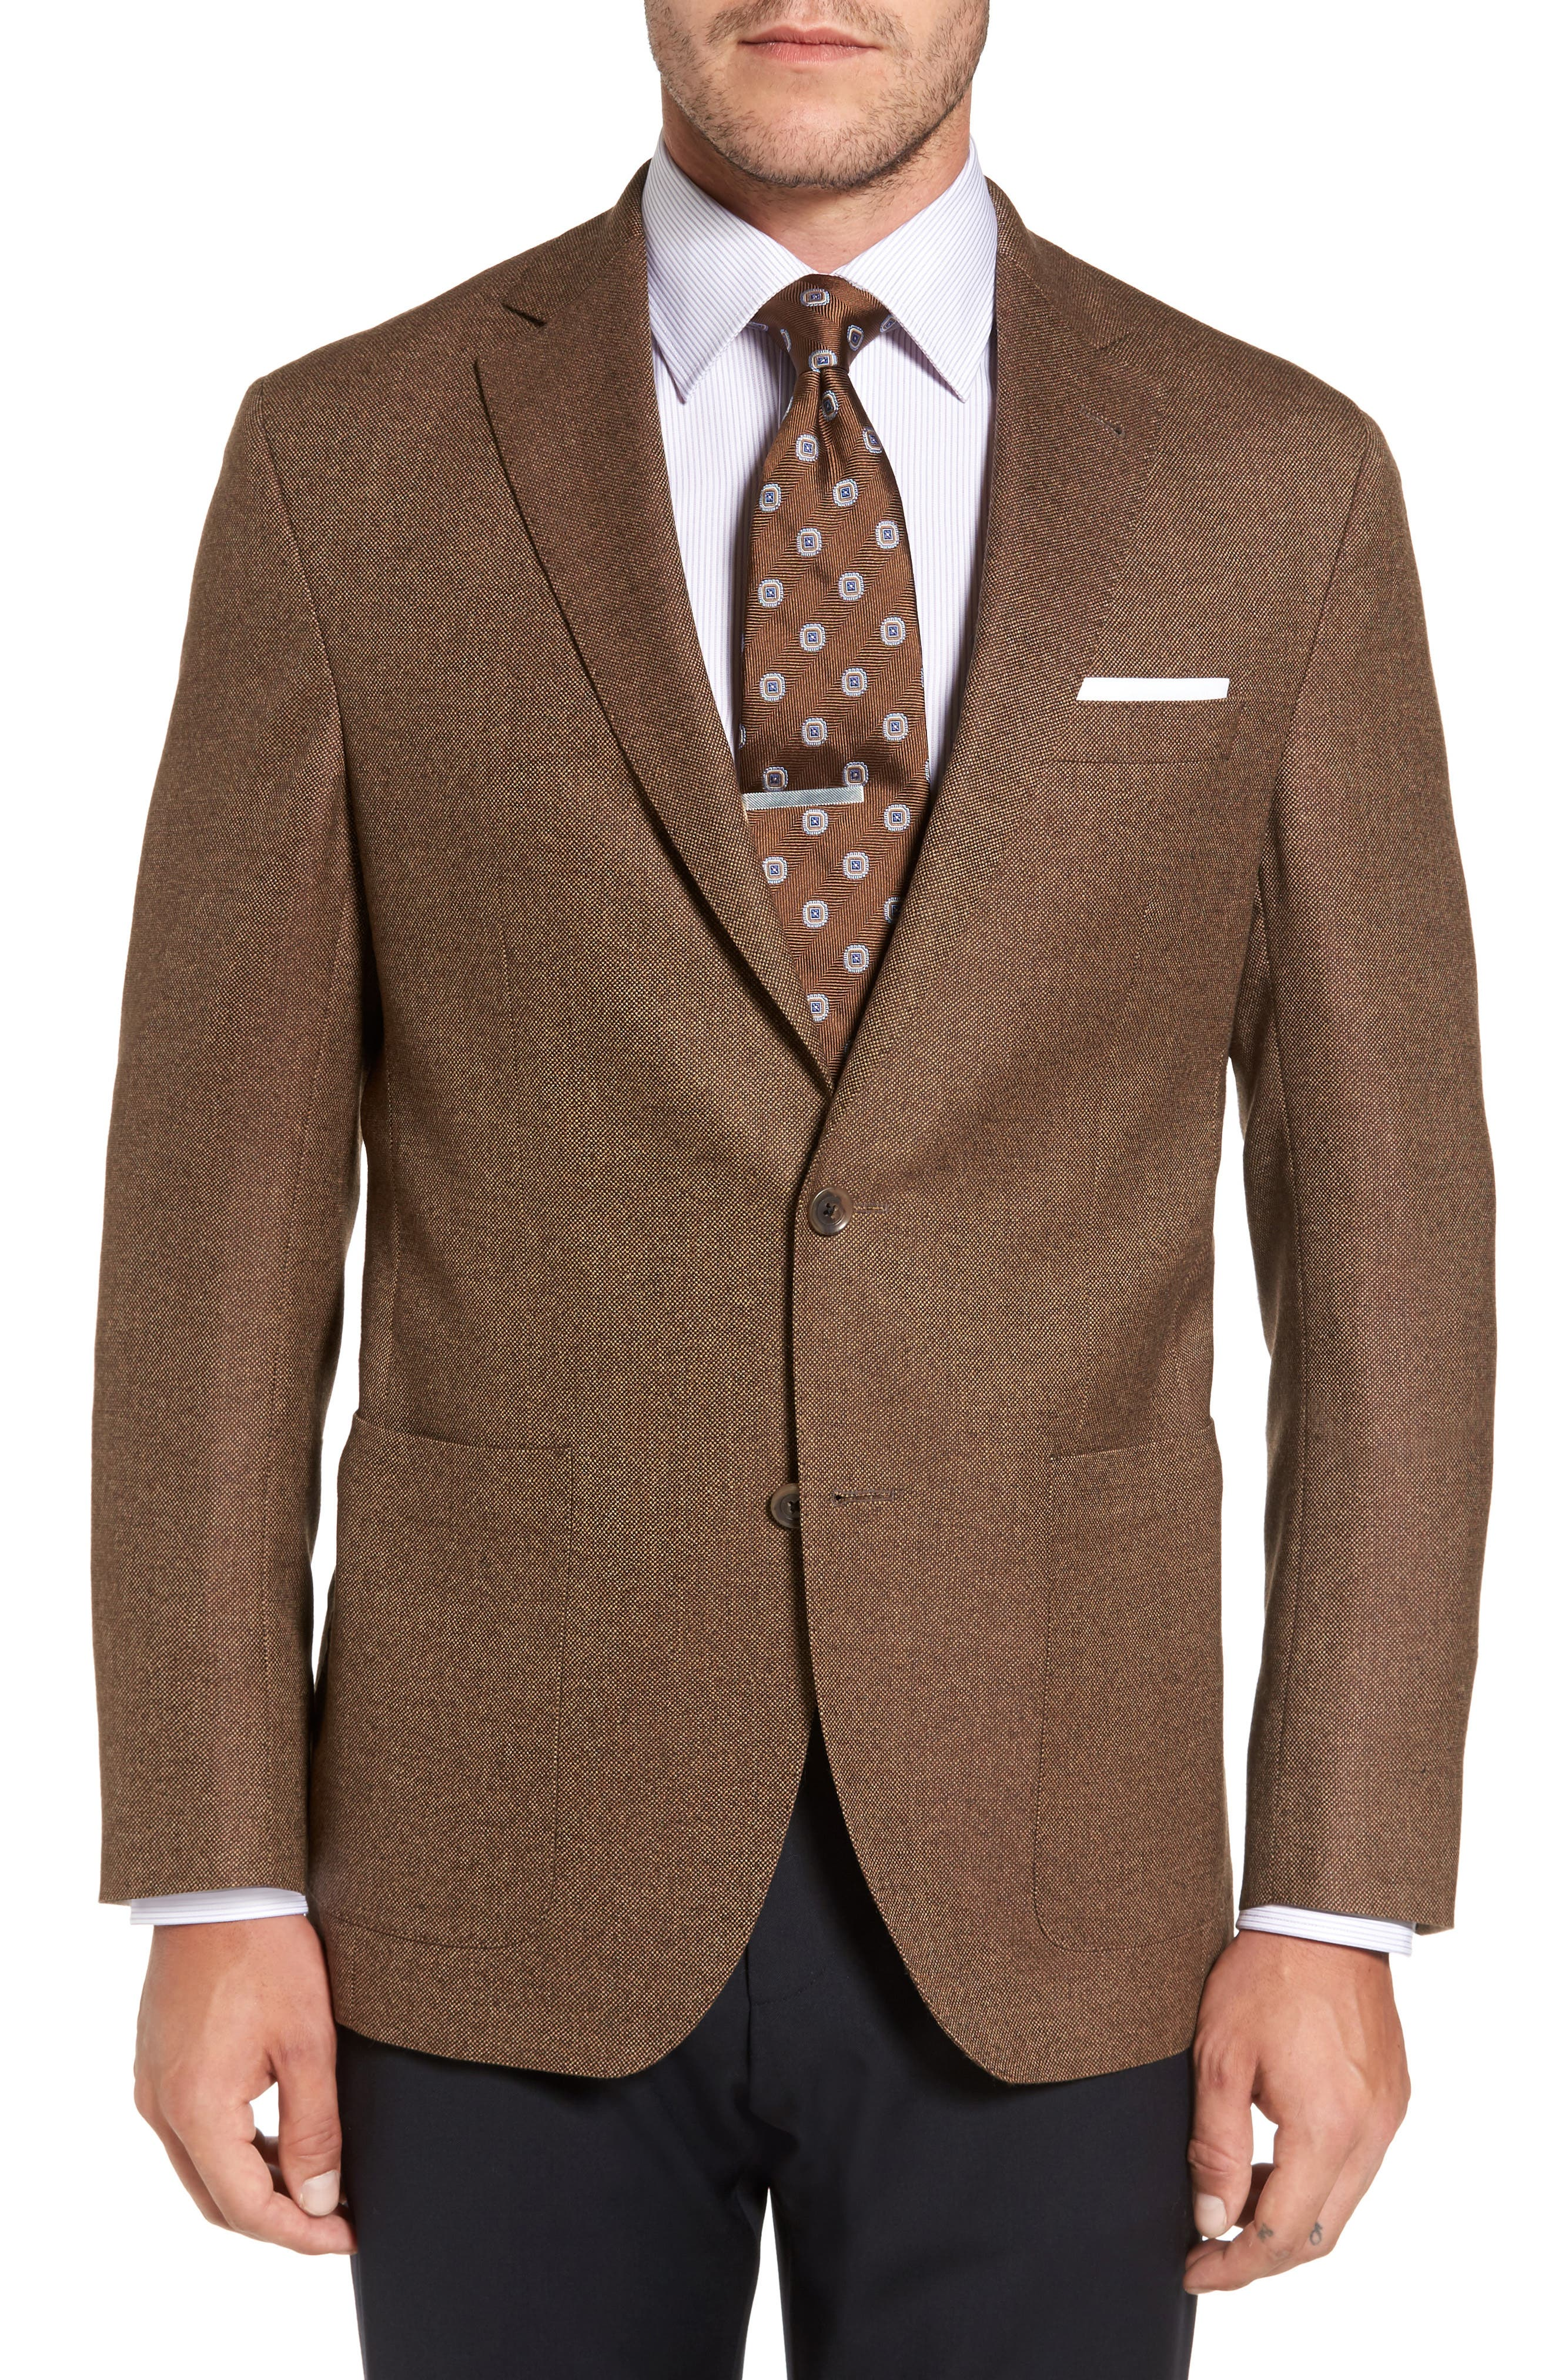 Aiden Classic Fit Wool Blazer,                             Main thumbnail 1, color,                             Light Brown